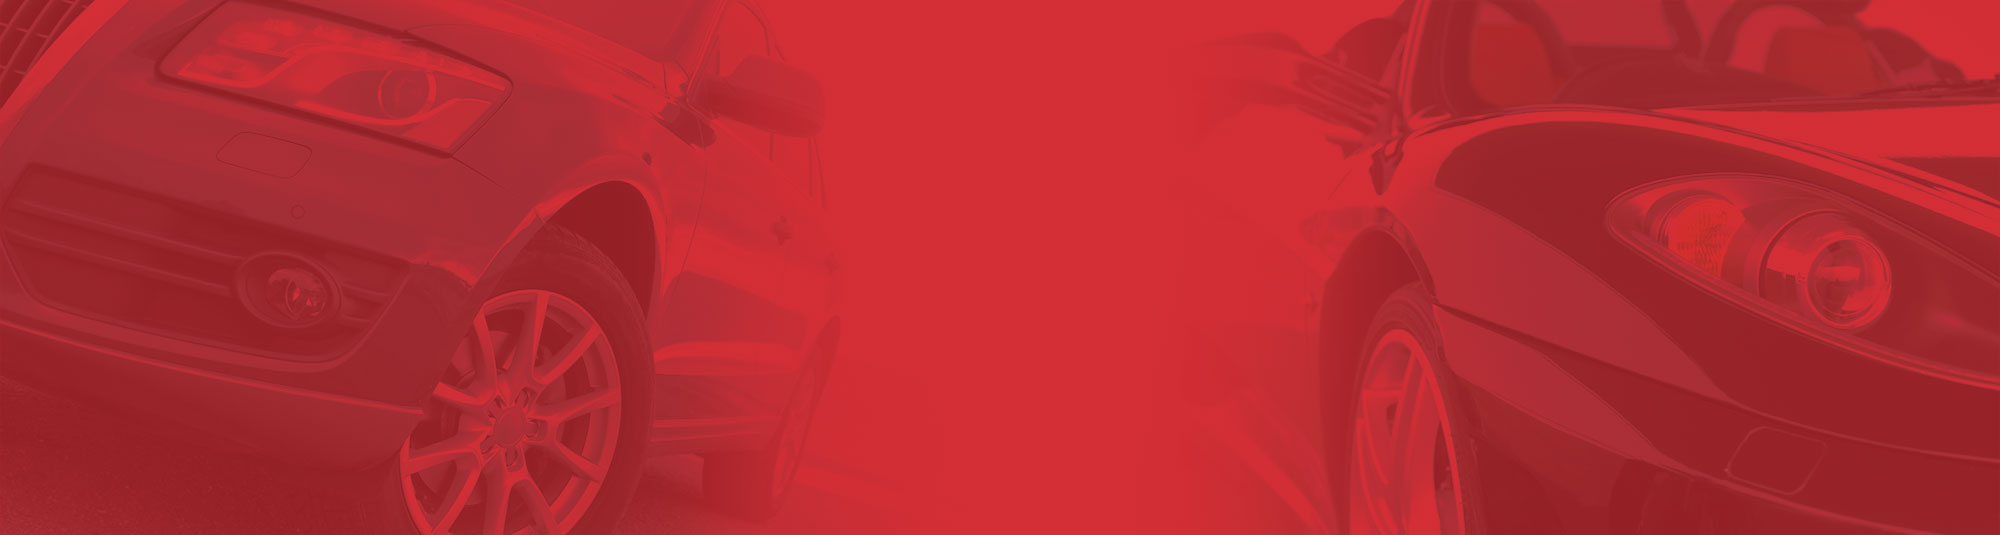 Red Hue Banner Background